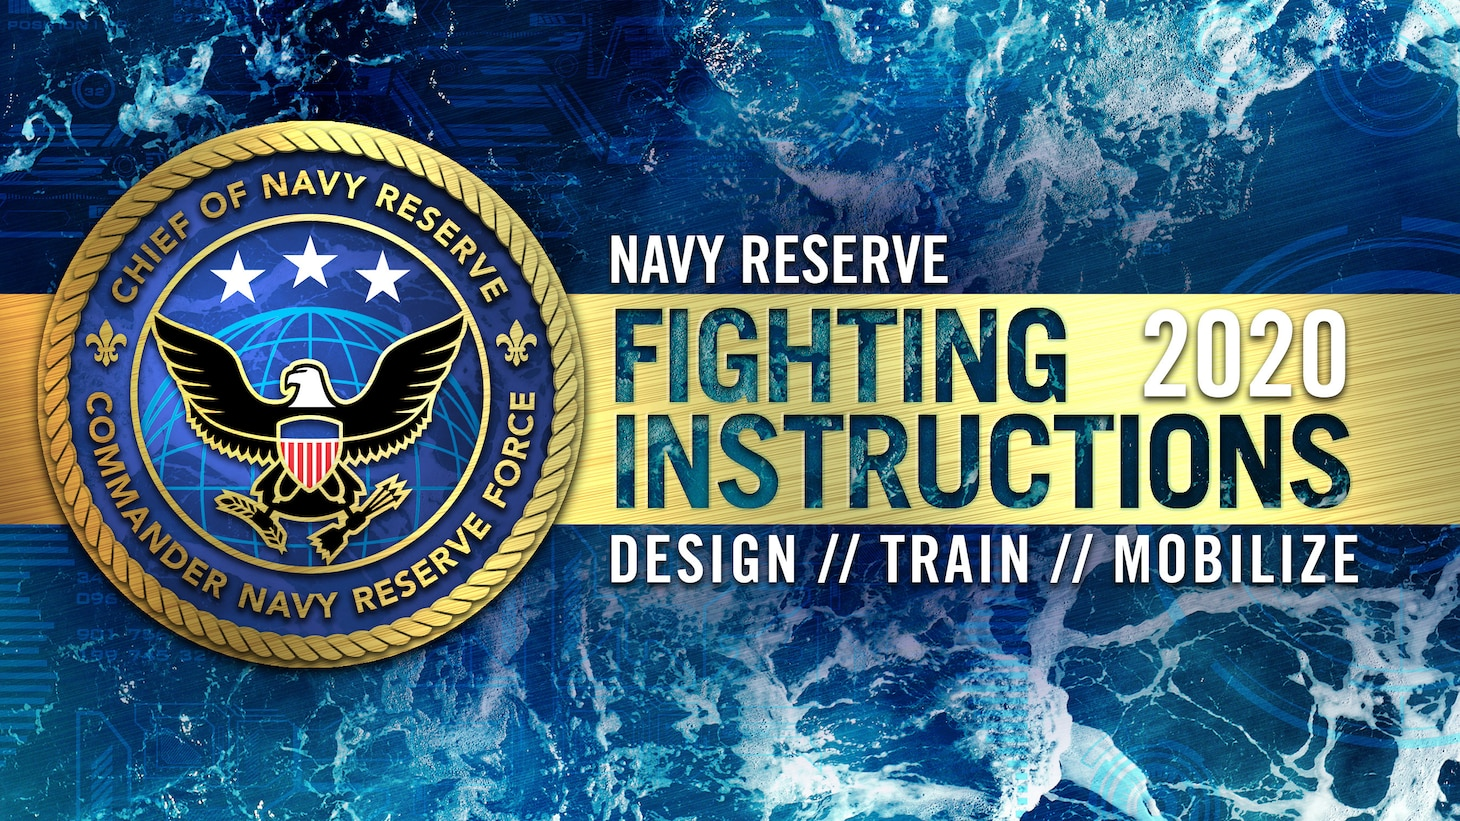 Navy Reserve Fighting Instructions 2020